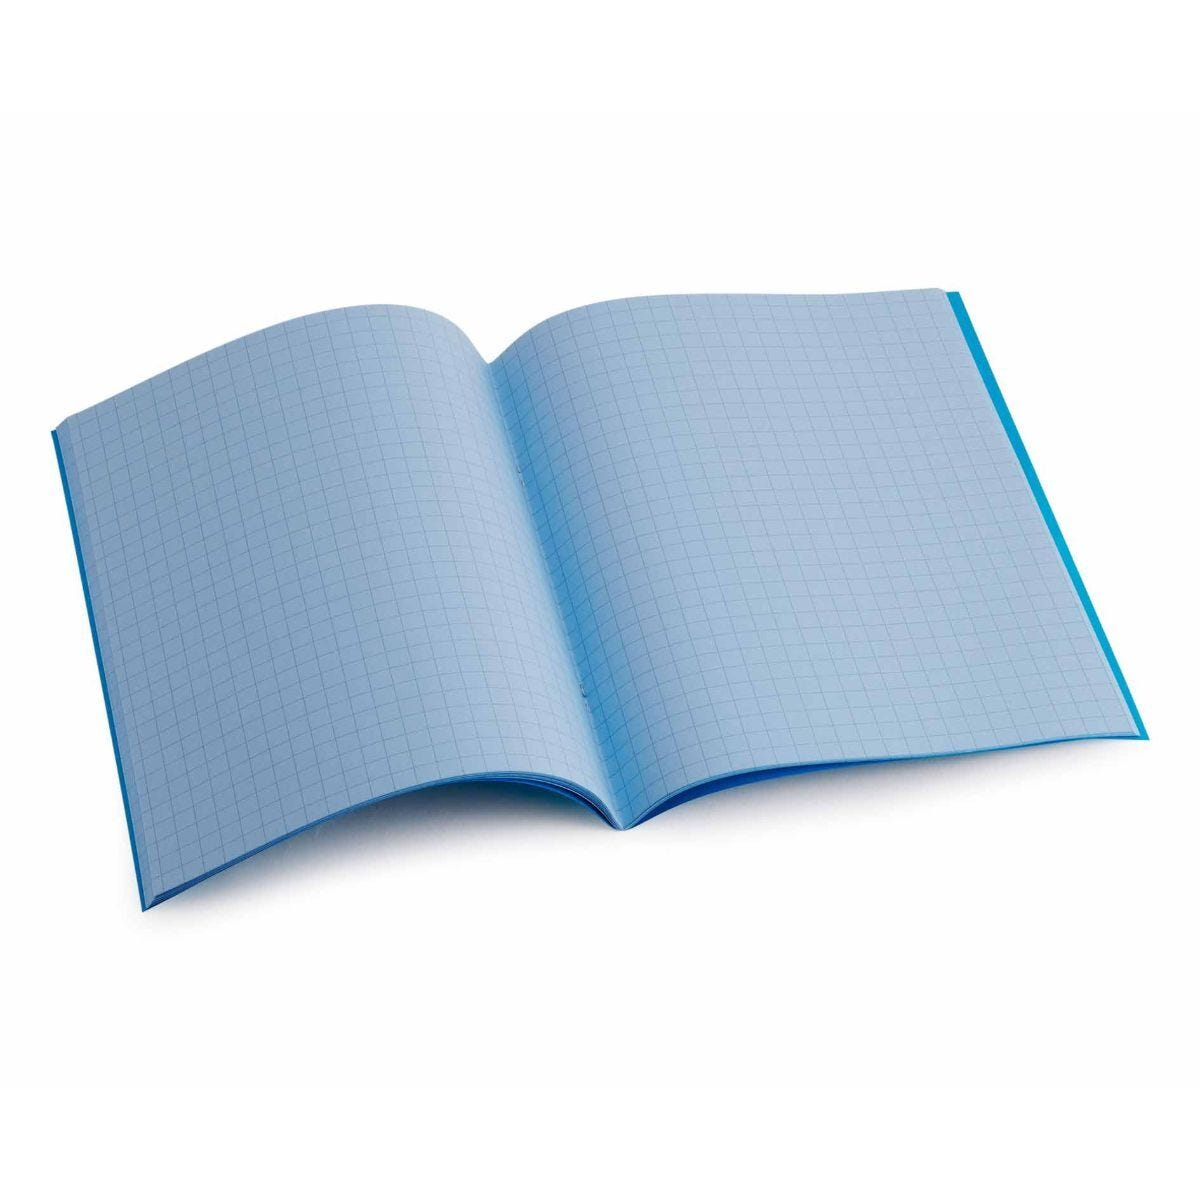 Tinted Exercise Book Standard 7x9 Squared 7.5mm Sky Blue